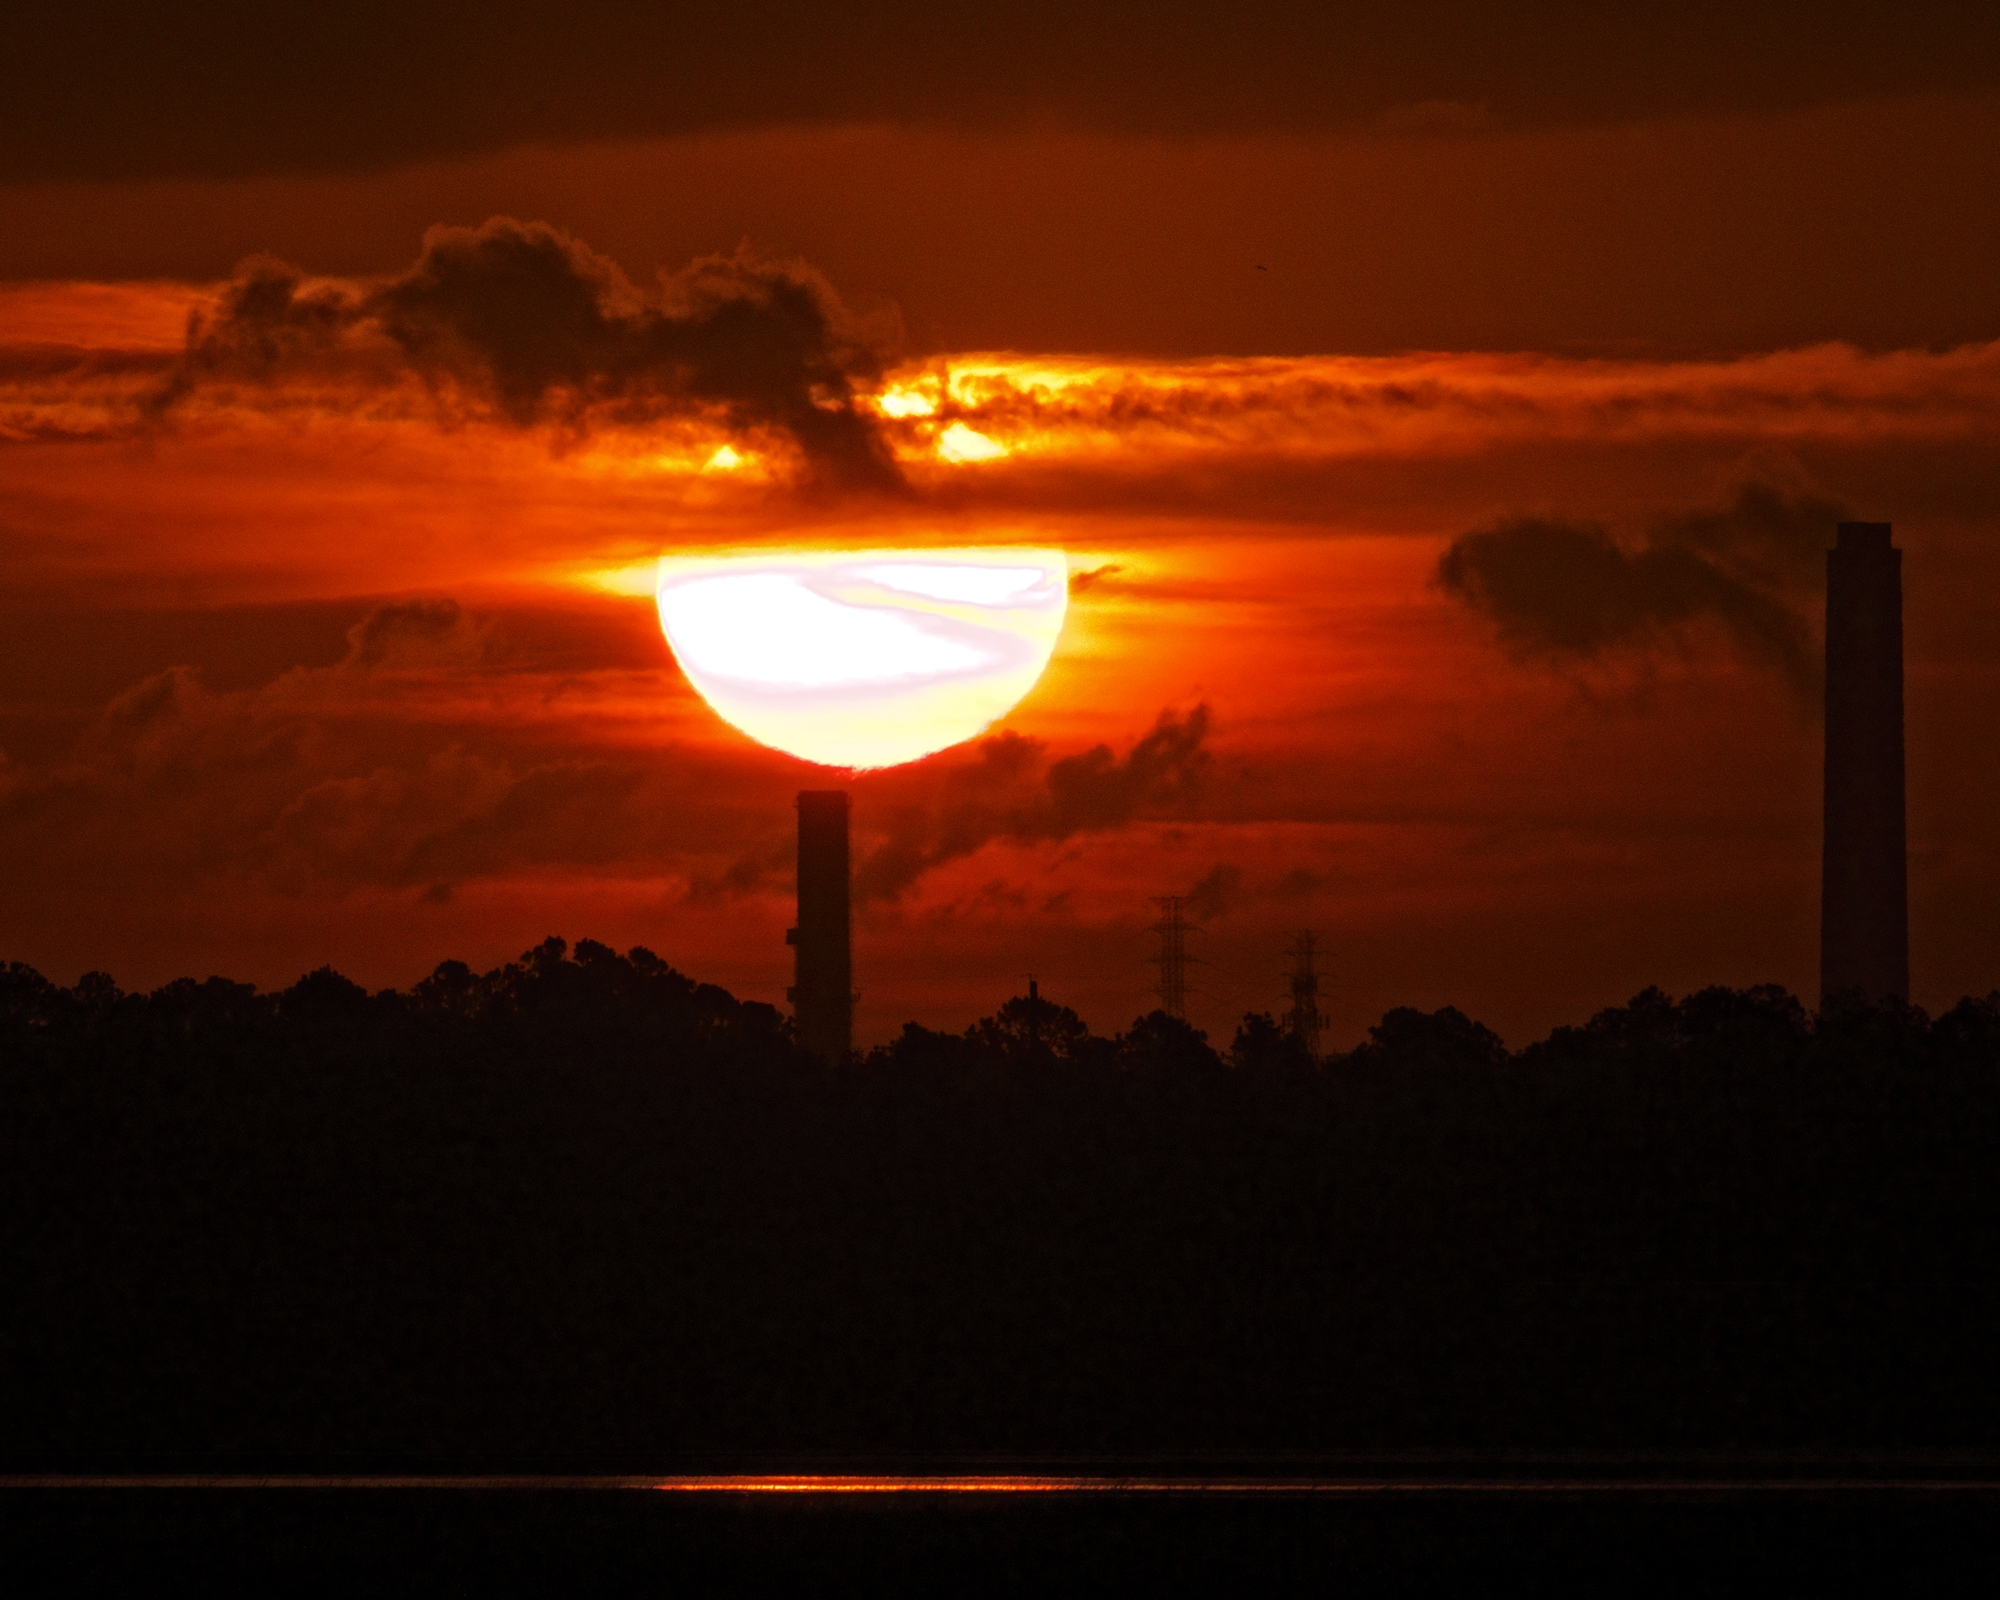 Morning Power on the Broward. The sun rises like an orb of molten glass over the power station.